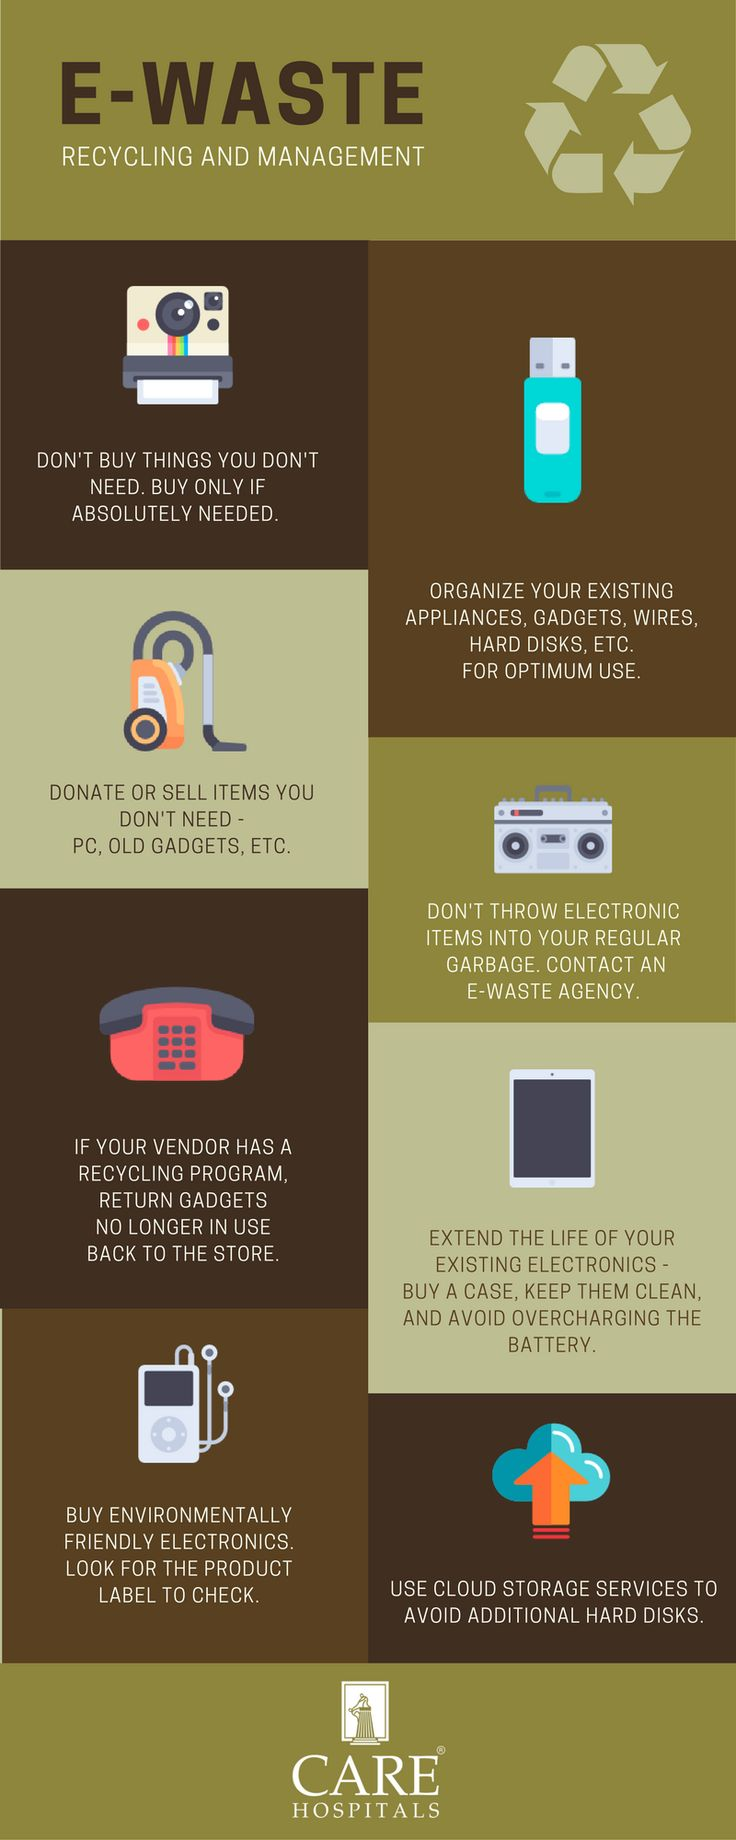 Do you have a lot of old gadgets and don't know how to dispose them? Follow these tips or contact an e-waste management company.